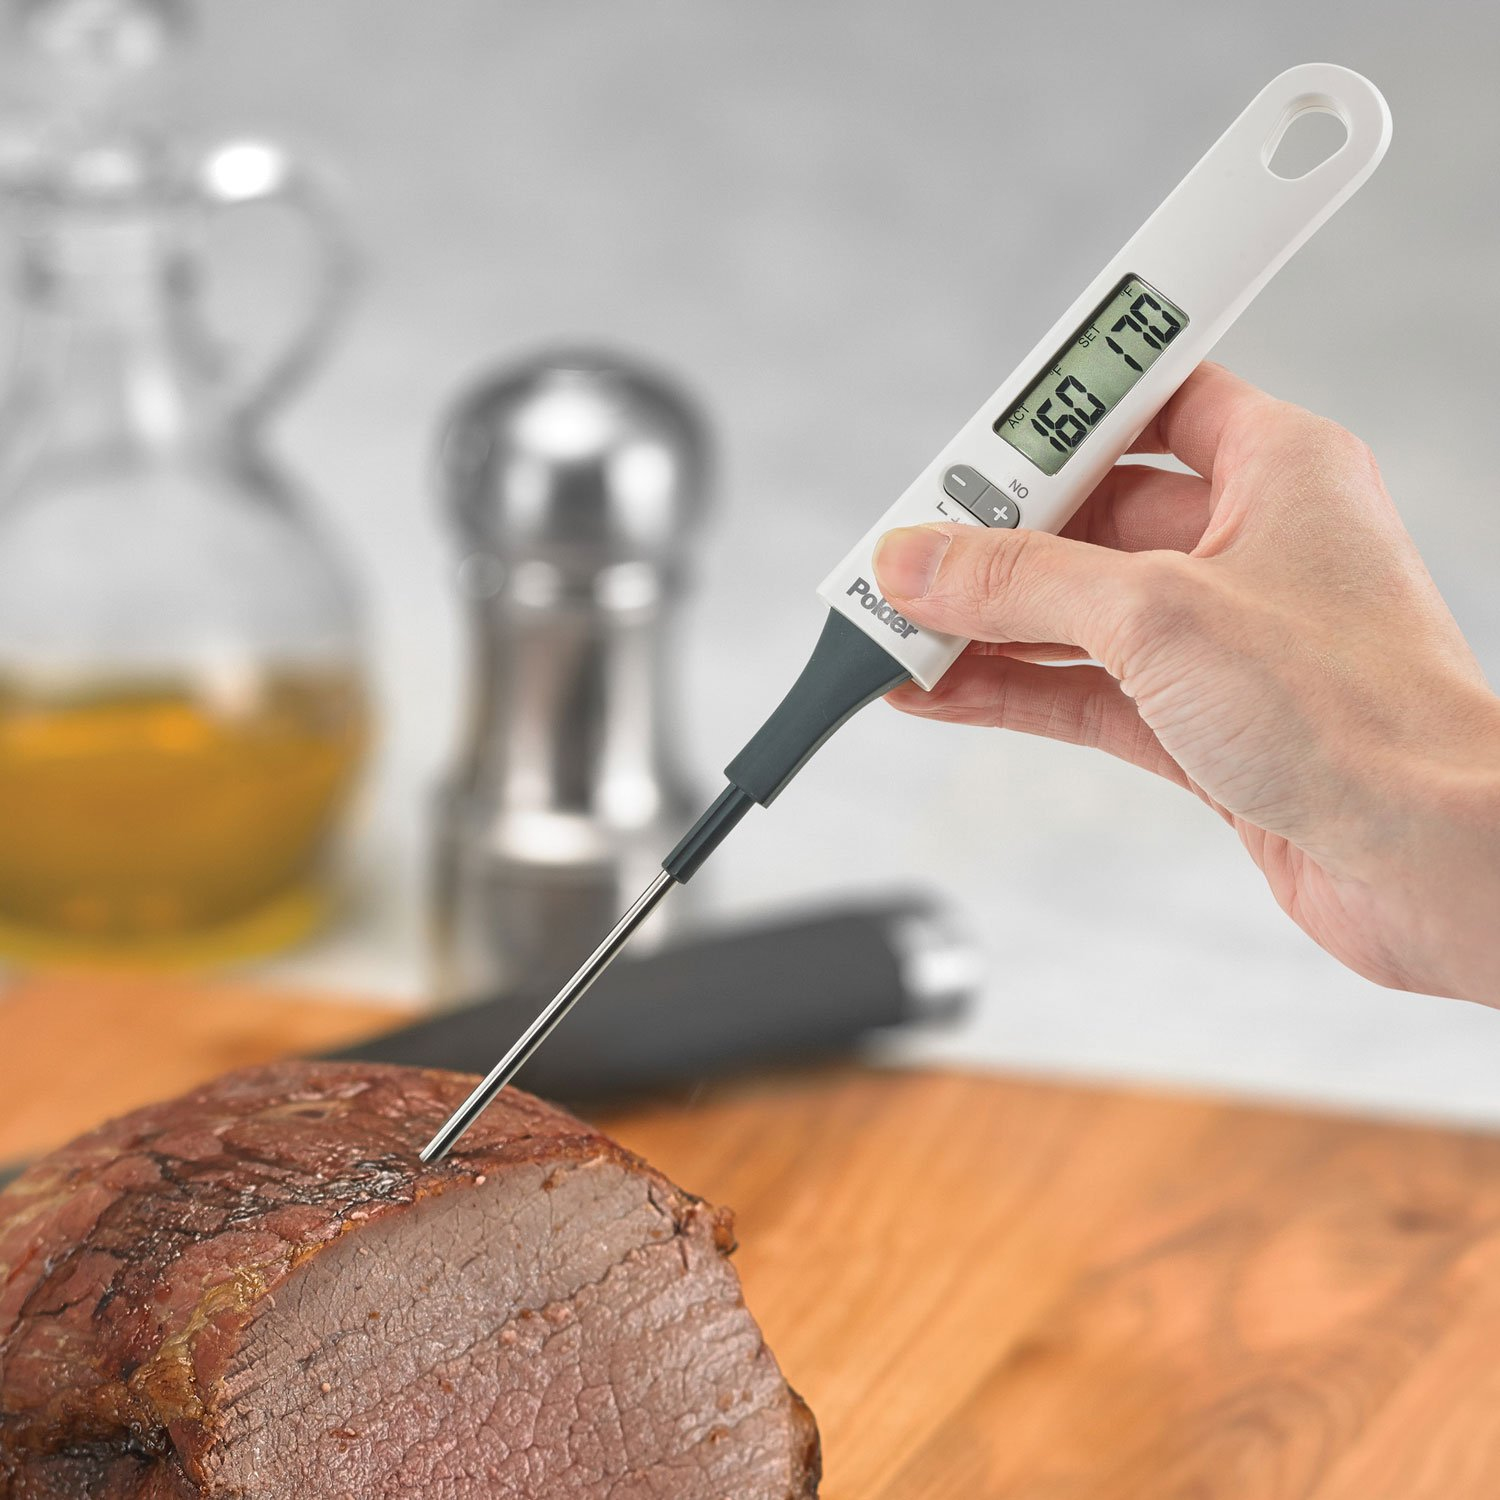 Polder THM-580-90 Digital Baking and Candy Thermometer with Spatula Stirring Attachment, White by Polder (Image #4)